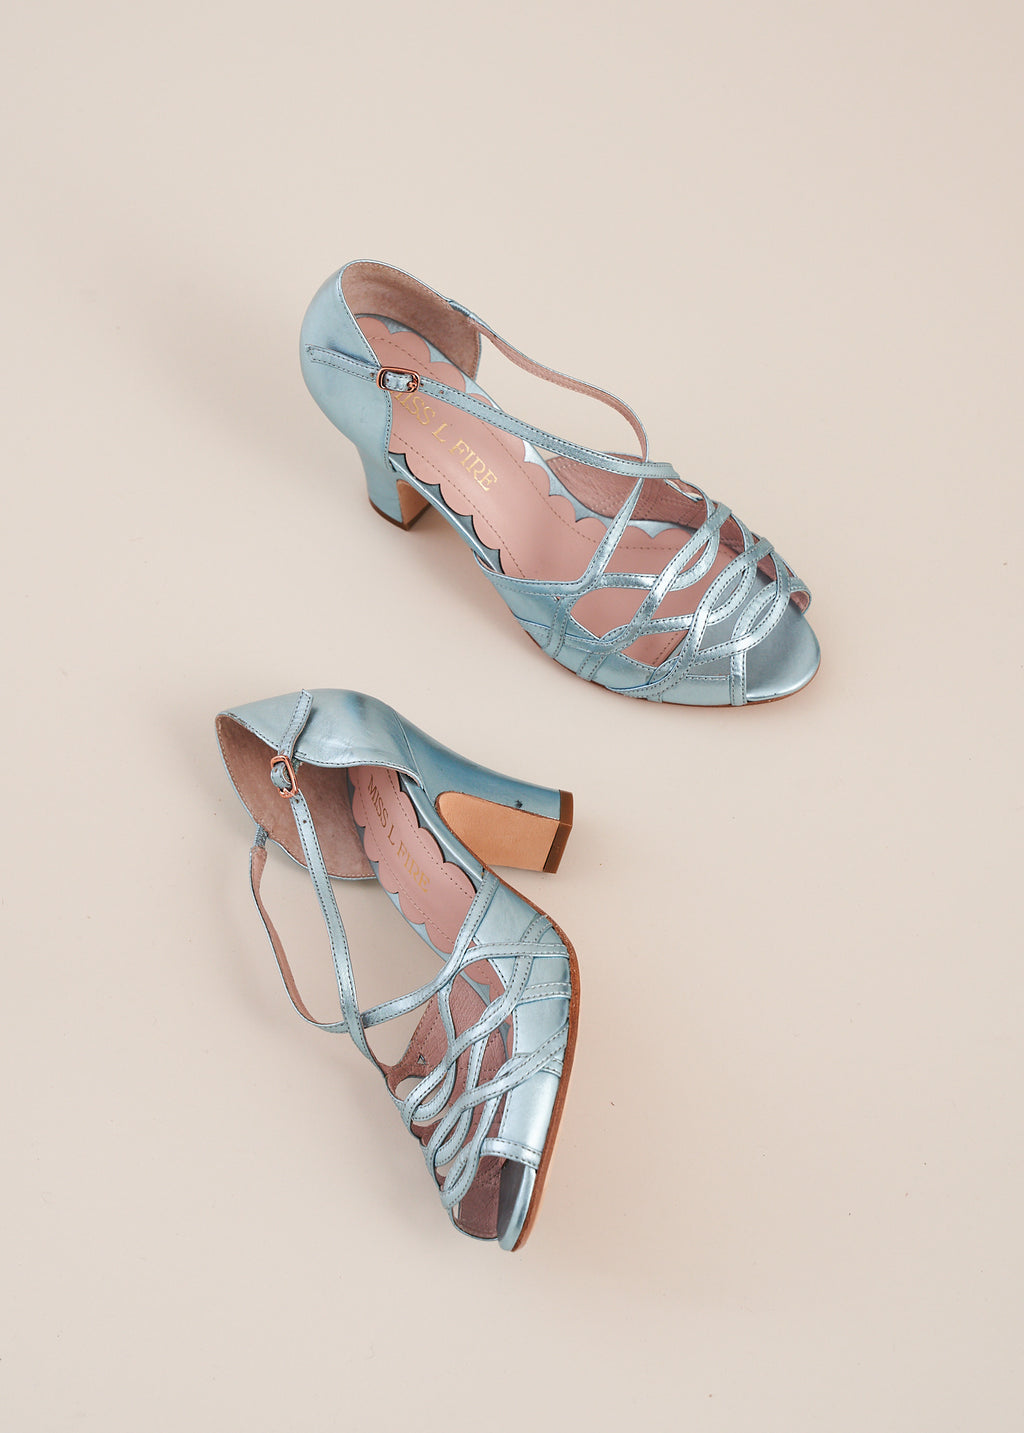 Adele in sky blue metallic leather by Miss L Fire. Strappy, vintage inspired sandal. Limited edition, ethically made.